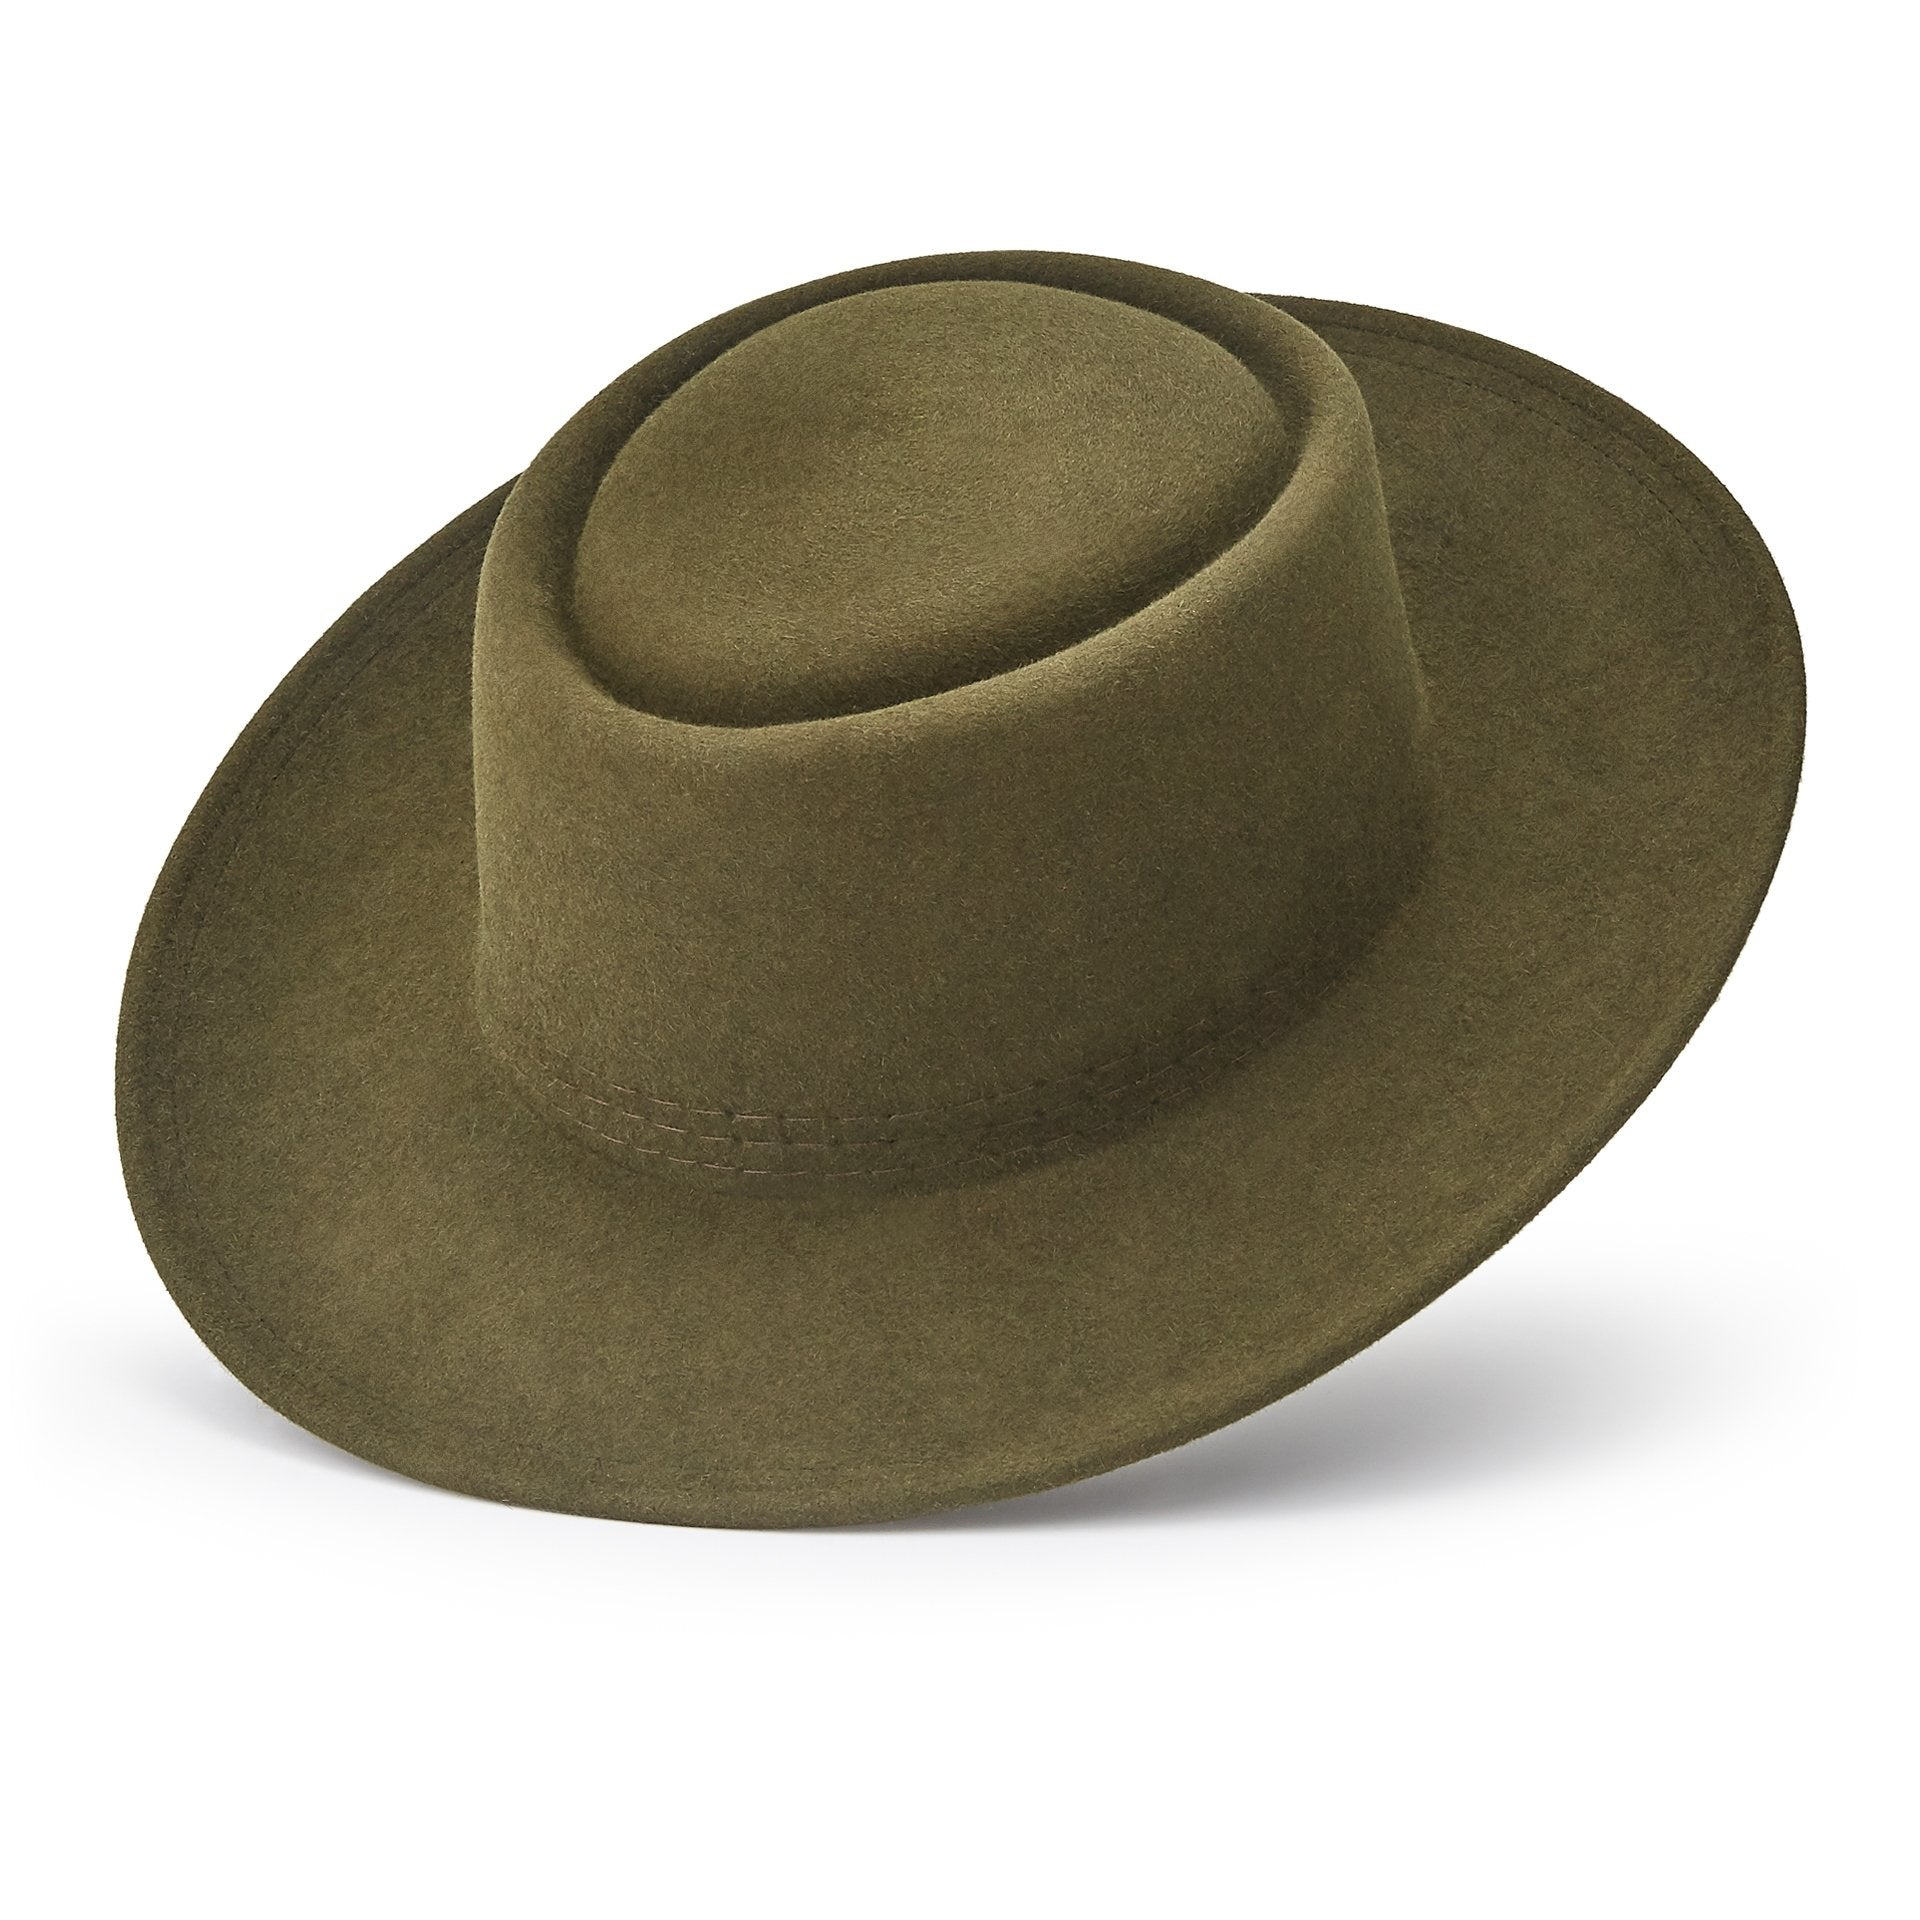 Bruton fedora - Fedoras & homburgs - Lock & Co. Hatters London UK